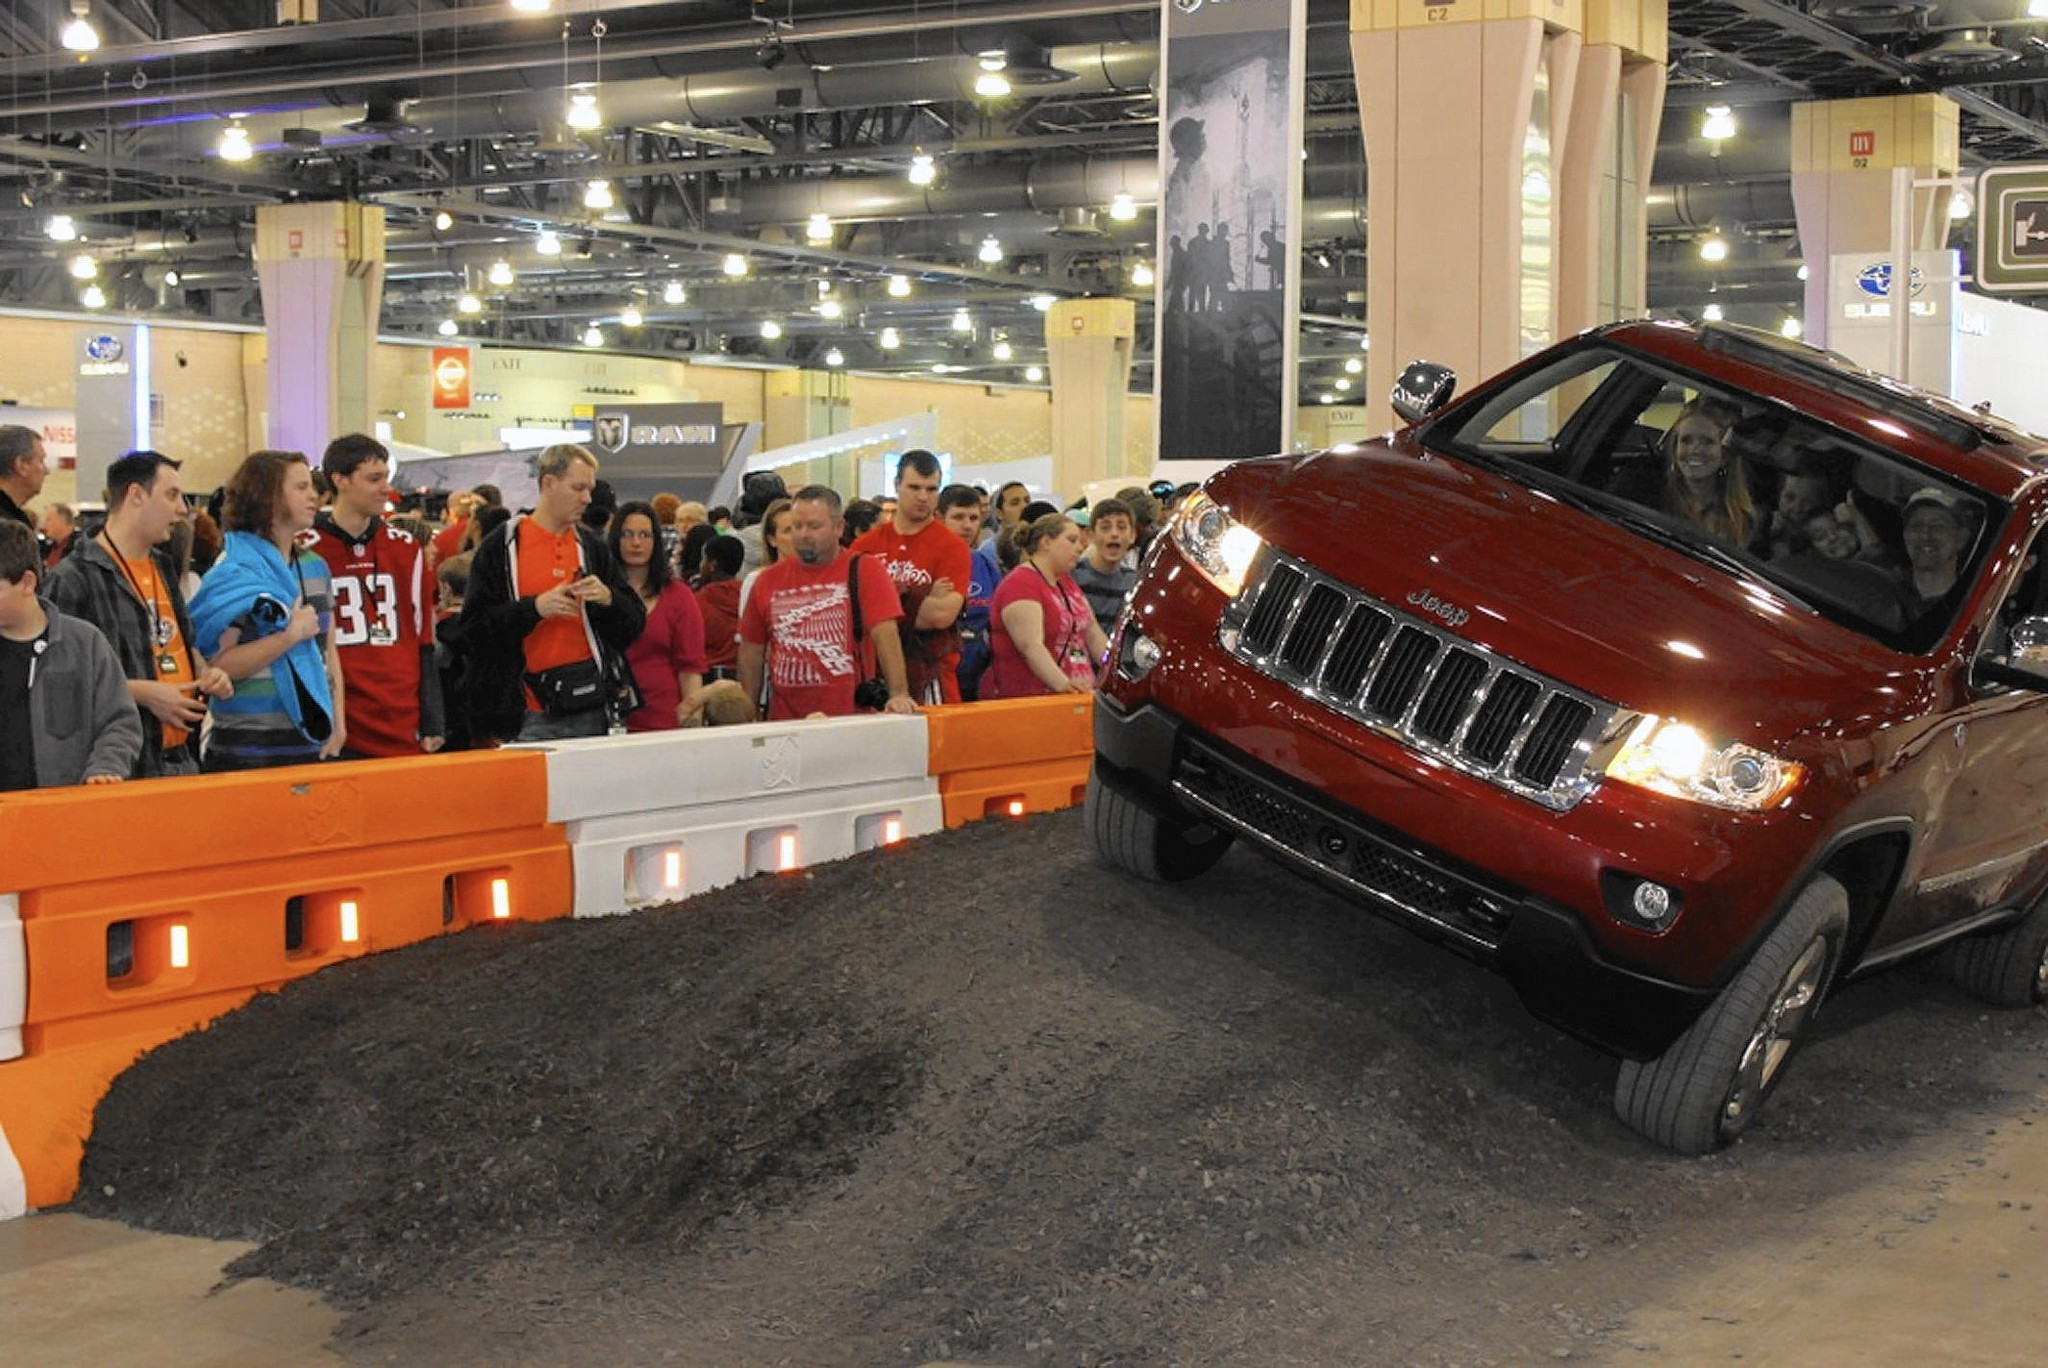 Gear Up For Final Days Of Philadelphia Auto Show The Morning Call - Philly car show